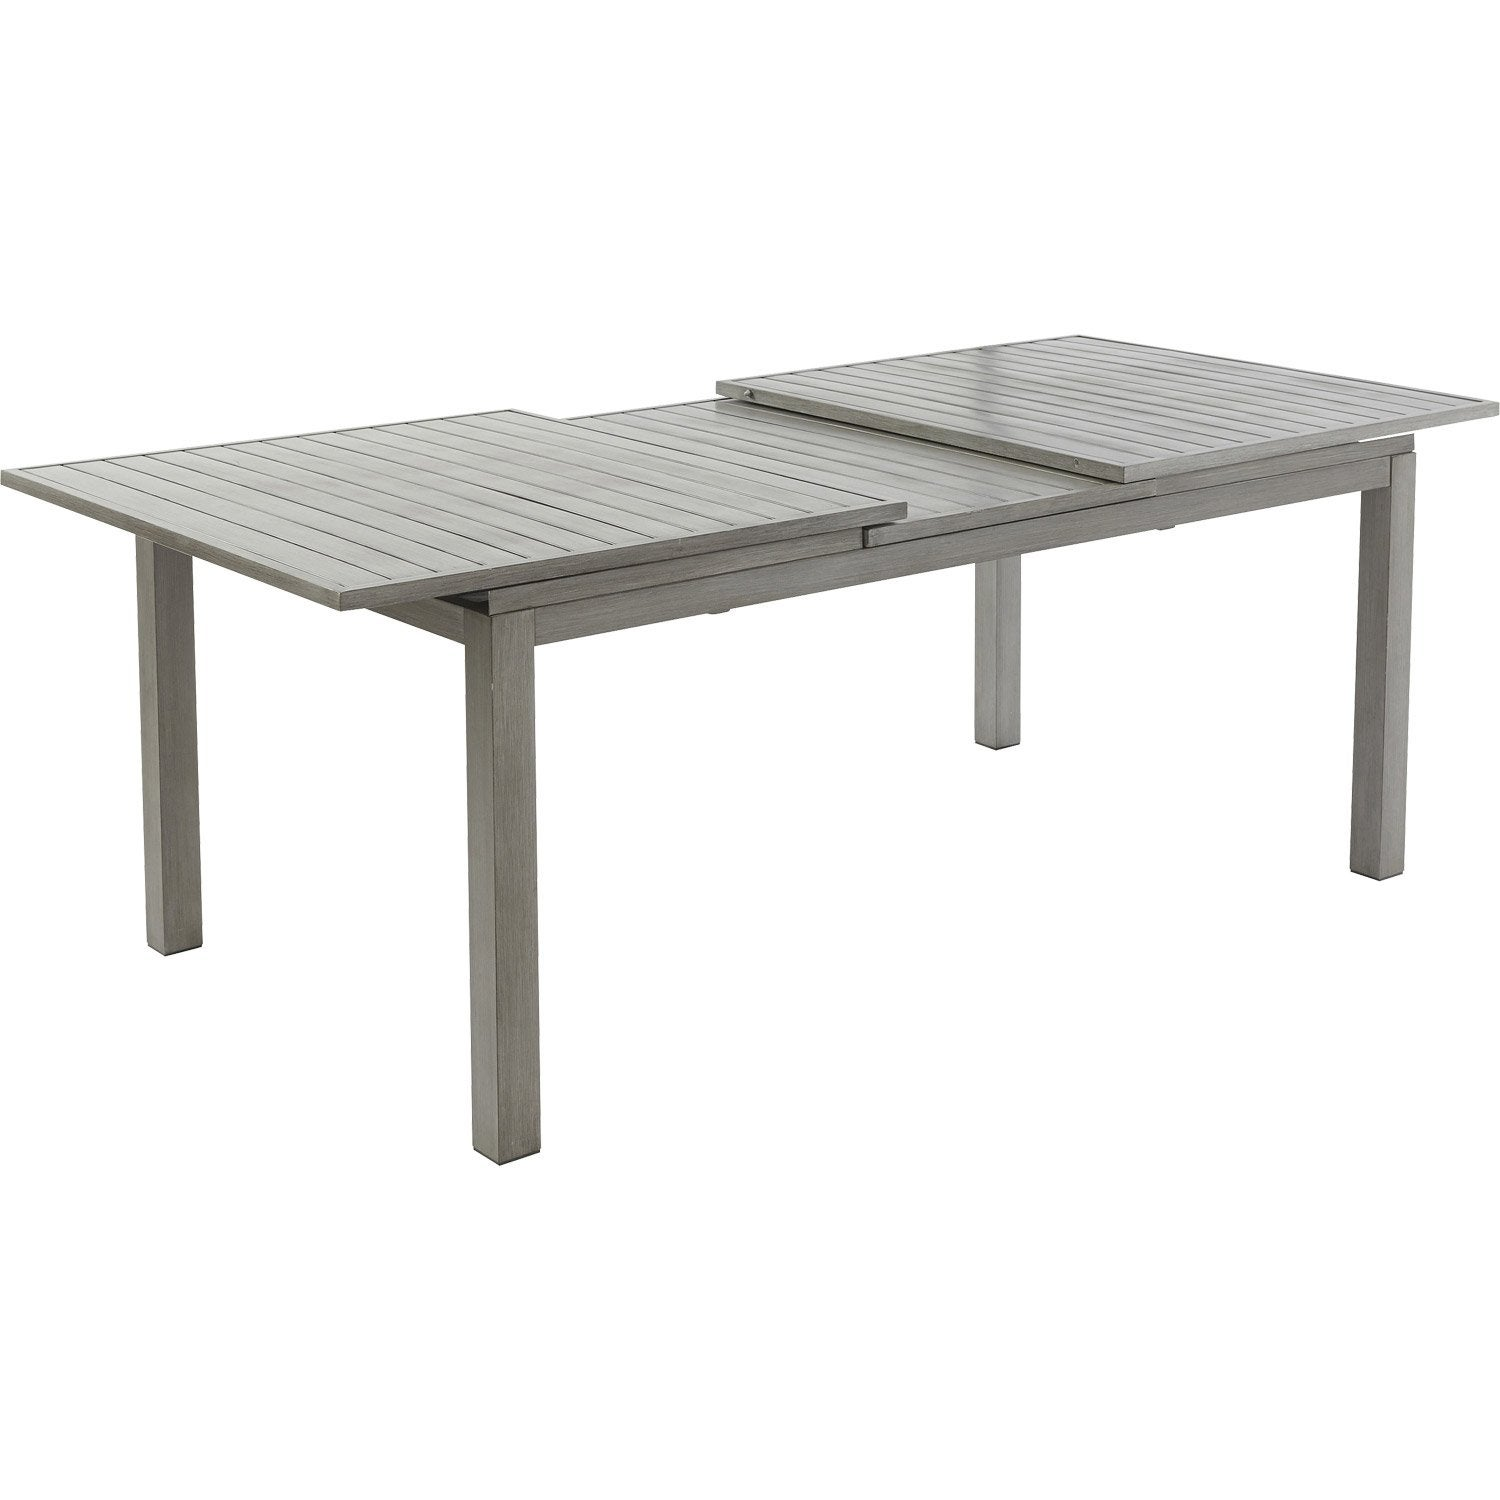 Table de jardin avec extension rectangulaire aluwood for Leroy merlin table jardin